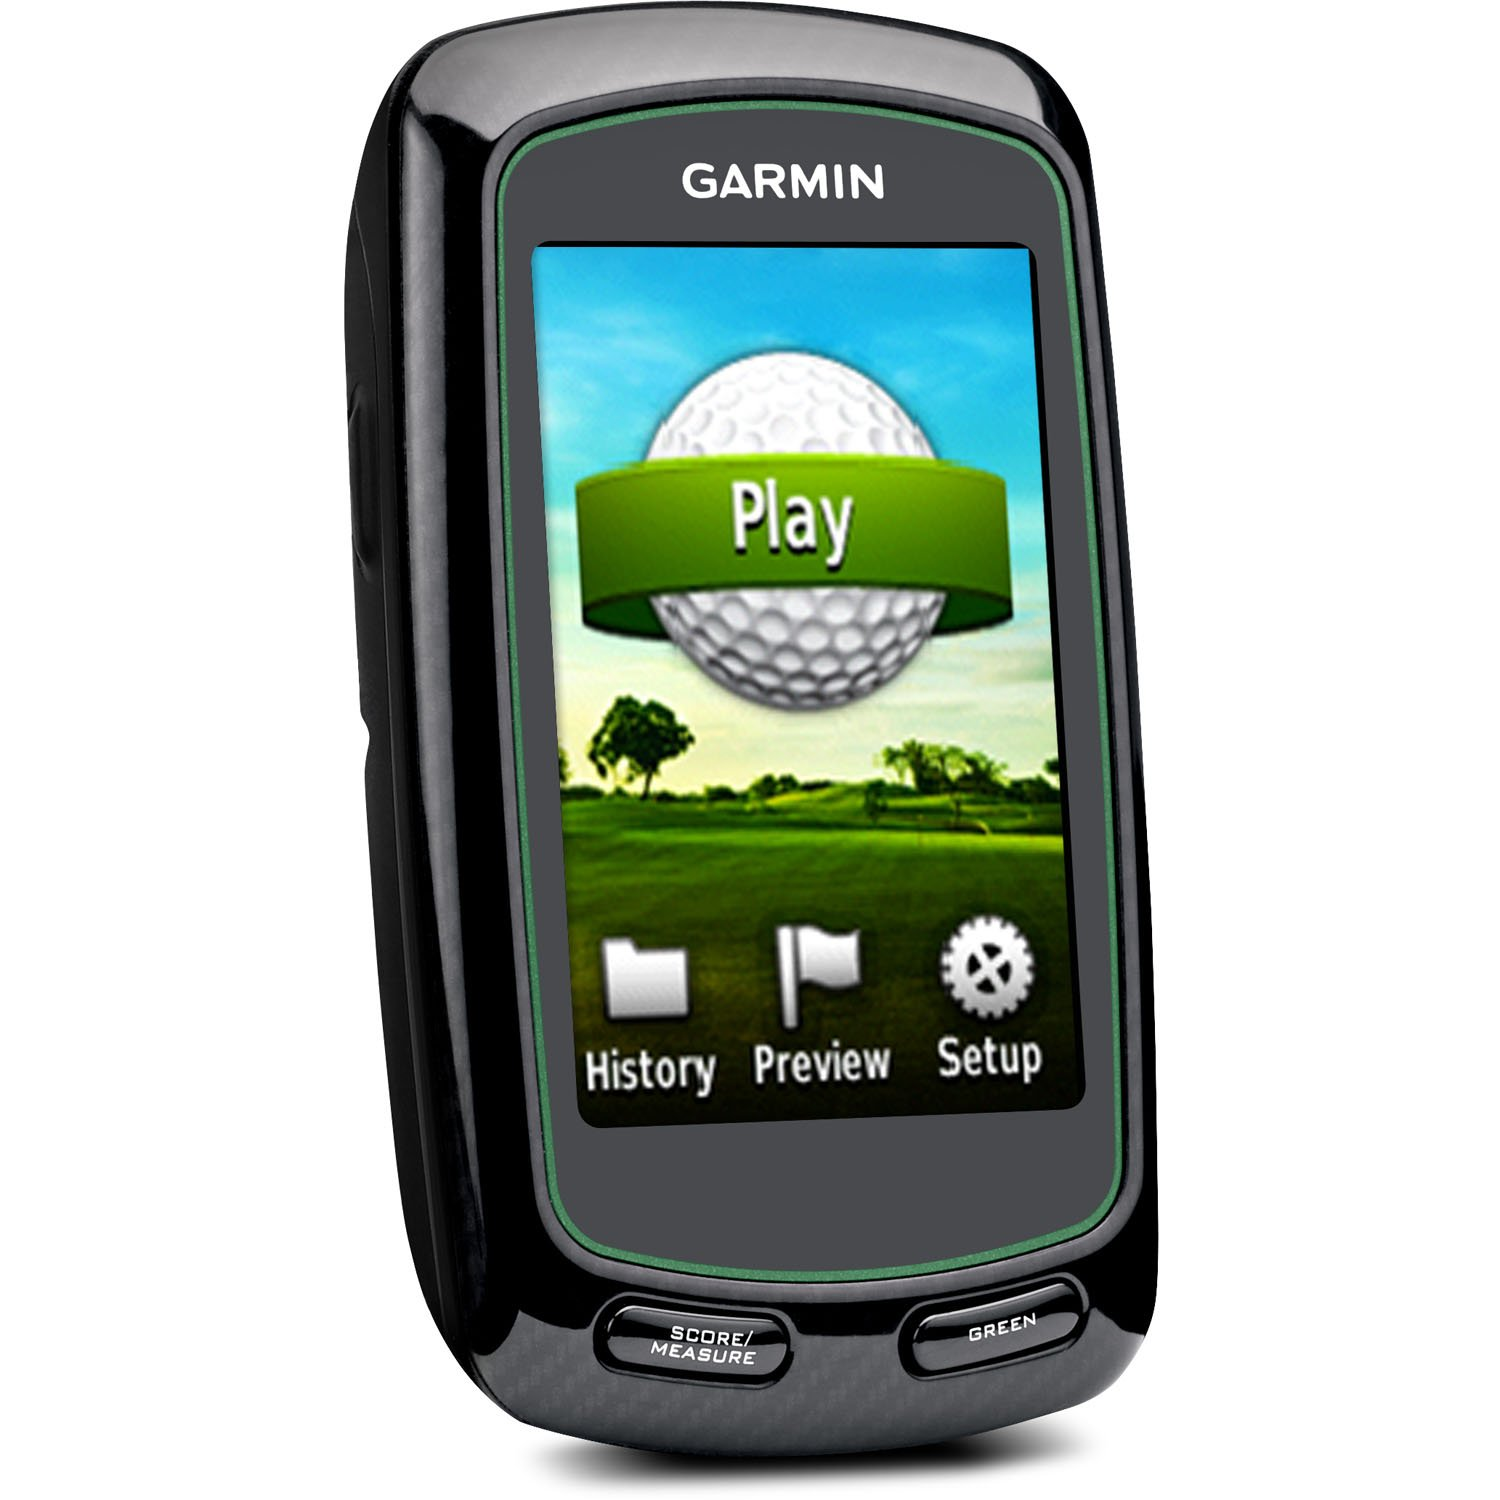 garmin approach g6 gps rangefinder reviews ratings pictures details. Black Bedroom Furniture Sets. Home Design Ideas